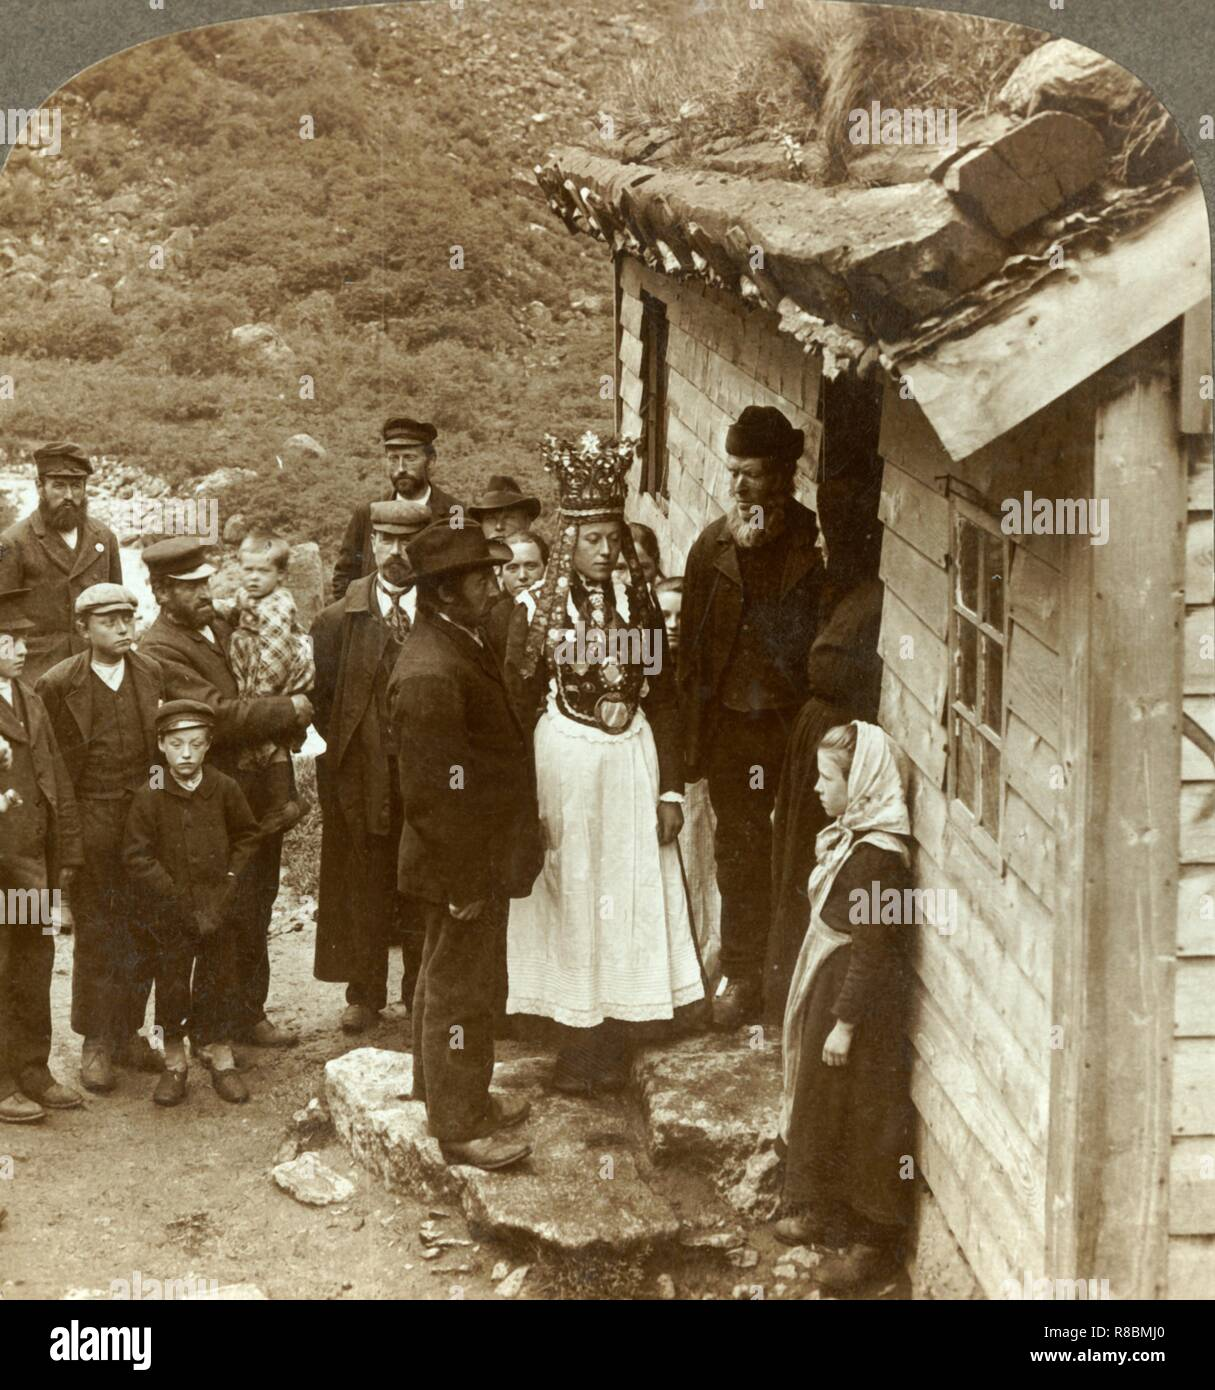 "'A Nordfjord bride and groom with guests and parents at their house door, Brigsdal, Norway', c1905. From ""The Underwood Travel Library - Norway"". [Underwood & Underwood, London ] - Stock Image"